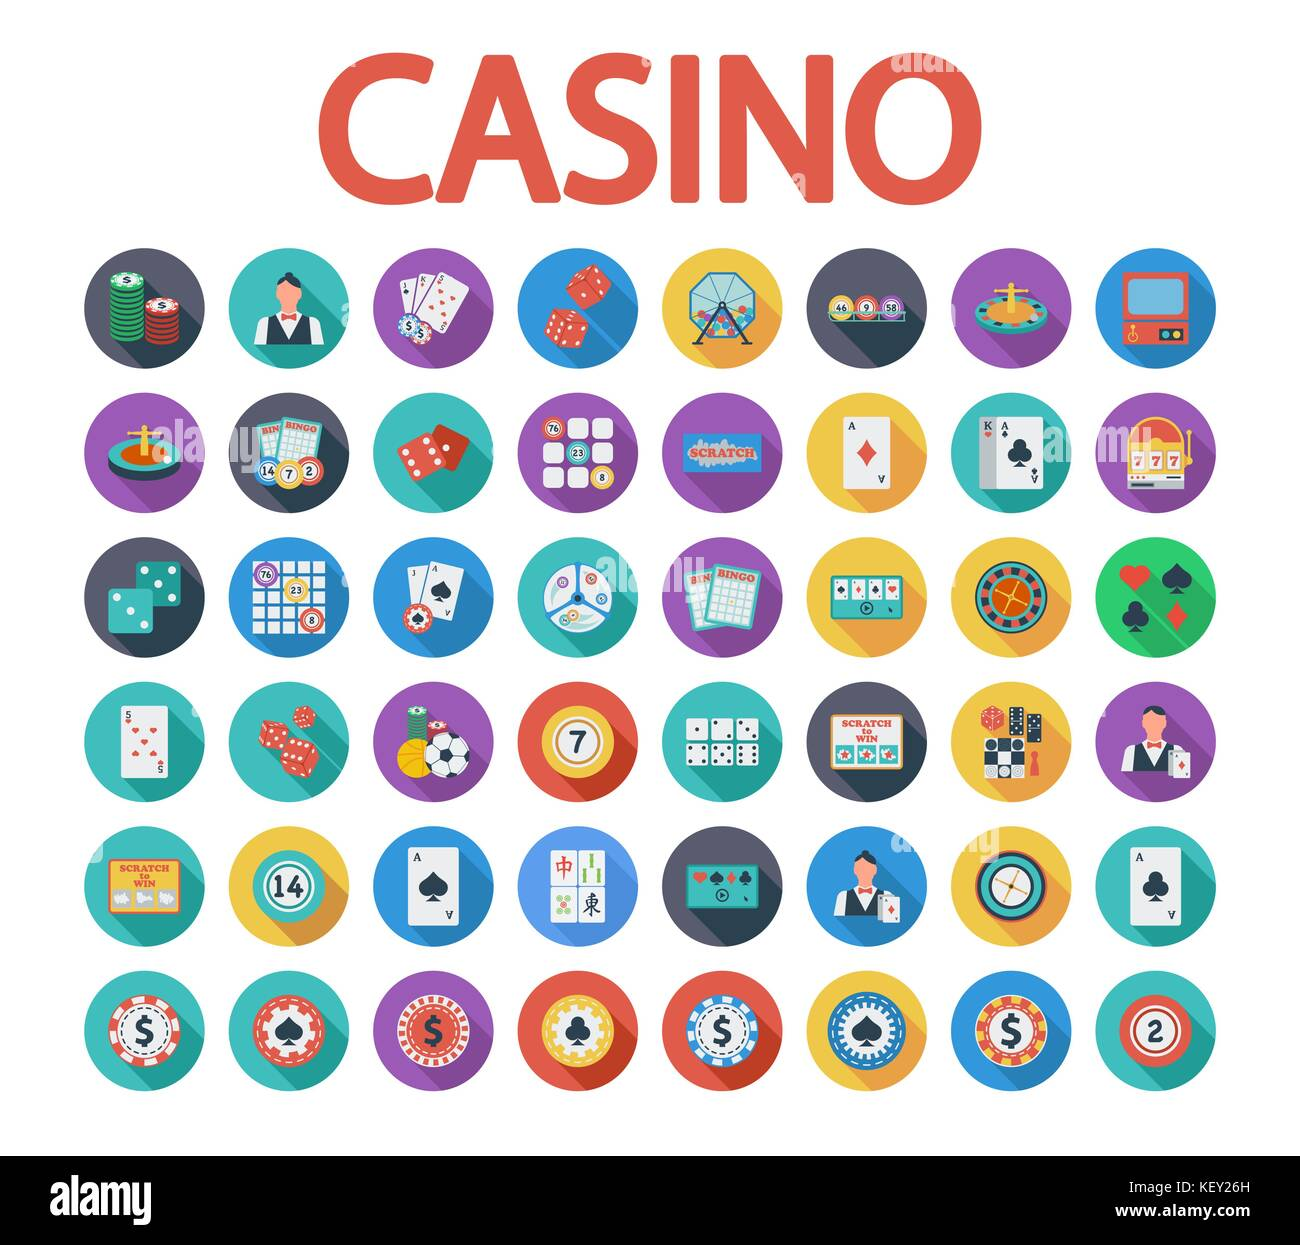 Traditional european roulette table vector illustration stock vector - Casino Icons Set Flat Vector Related Icon Set With Long Shadow For Web And Mobile